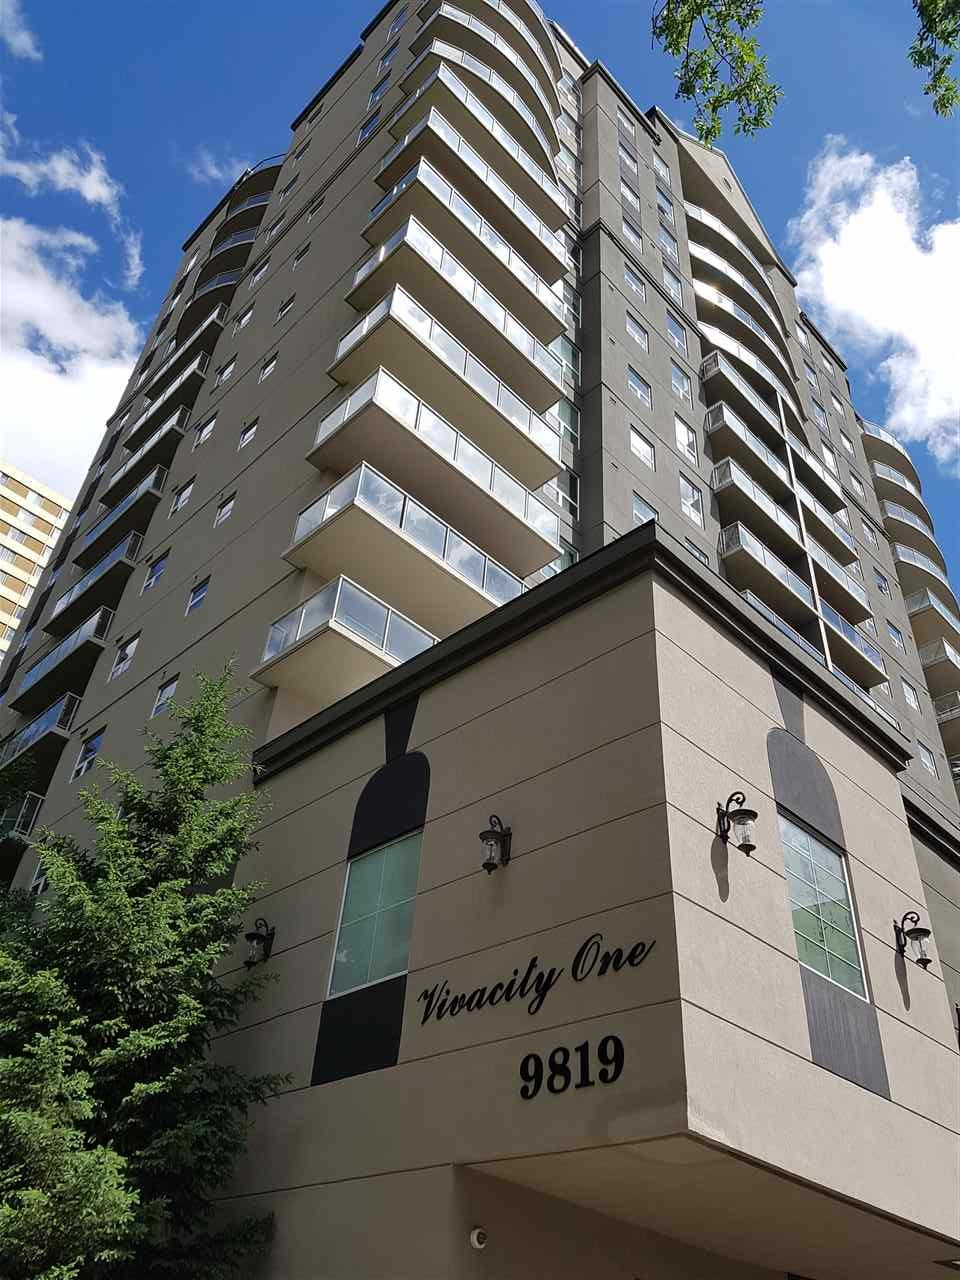 MLS® listing #E4166271 for sale located at 604 9819 104 Street